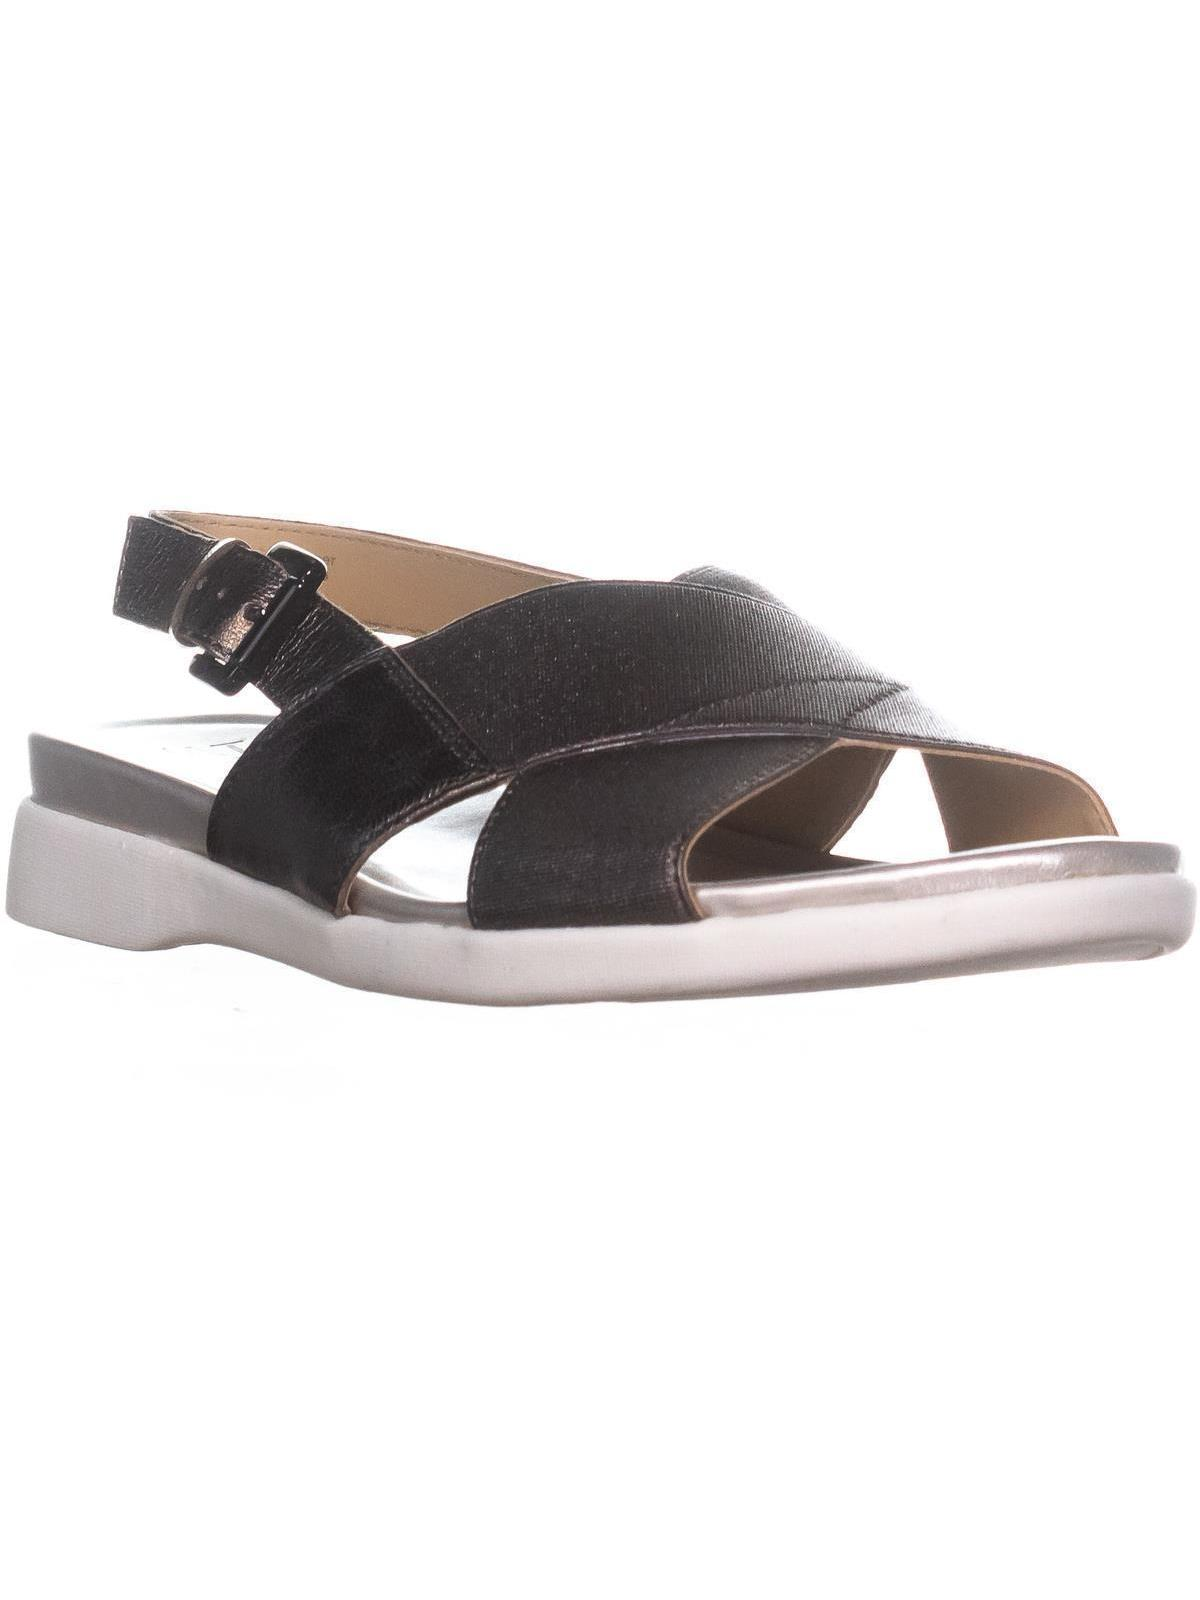 Womens Naturalizer Eliza Flat Ankle Strap Sandals, Gunmetal Leather by Naturalizer